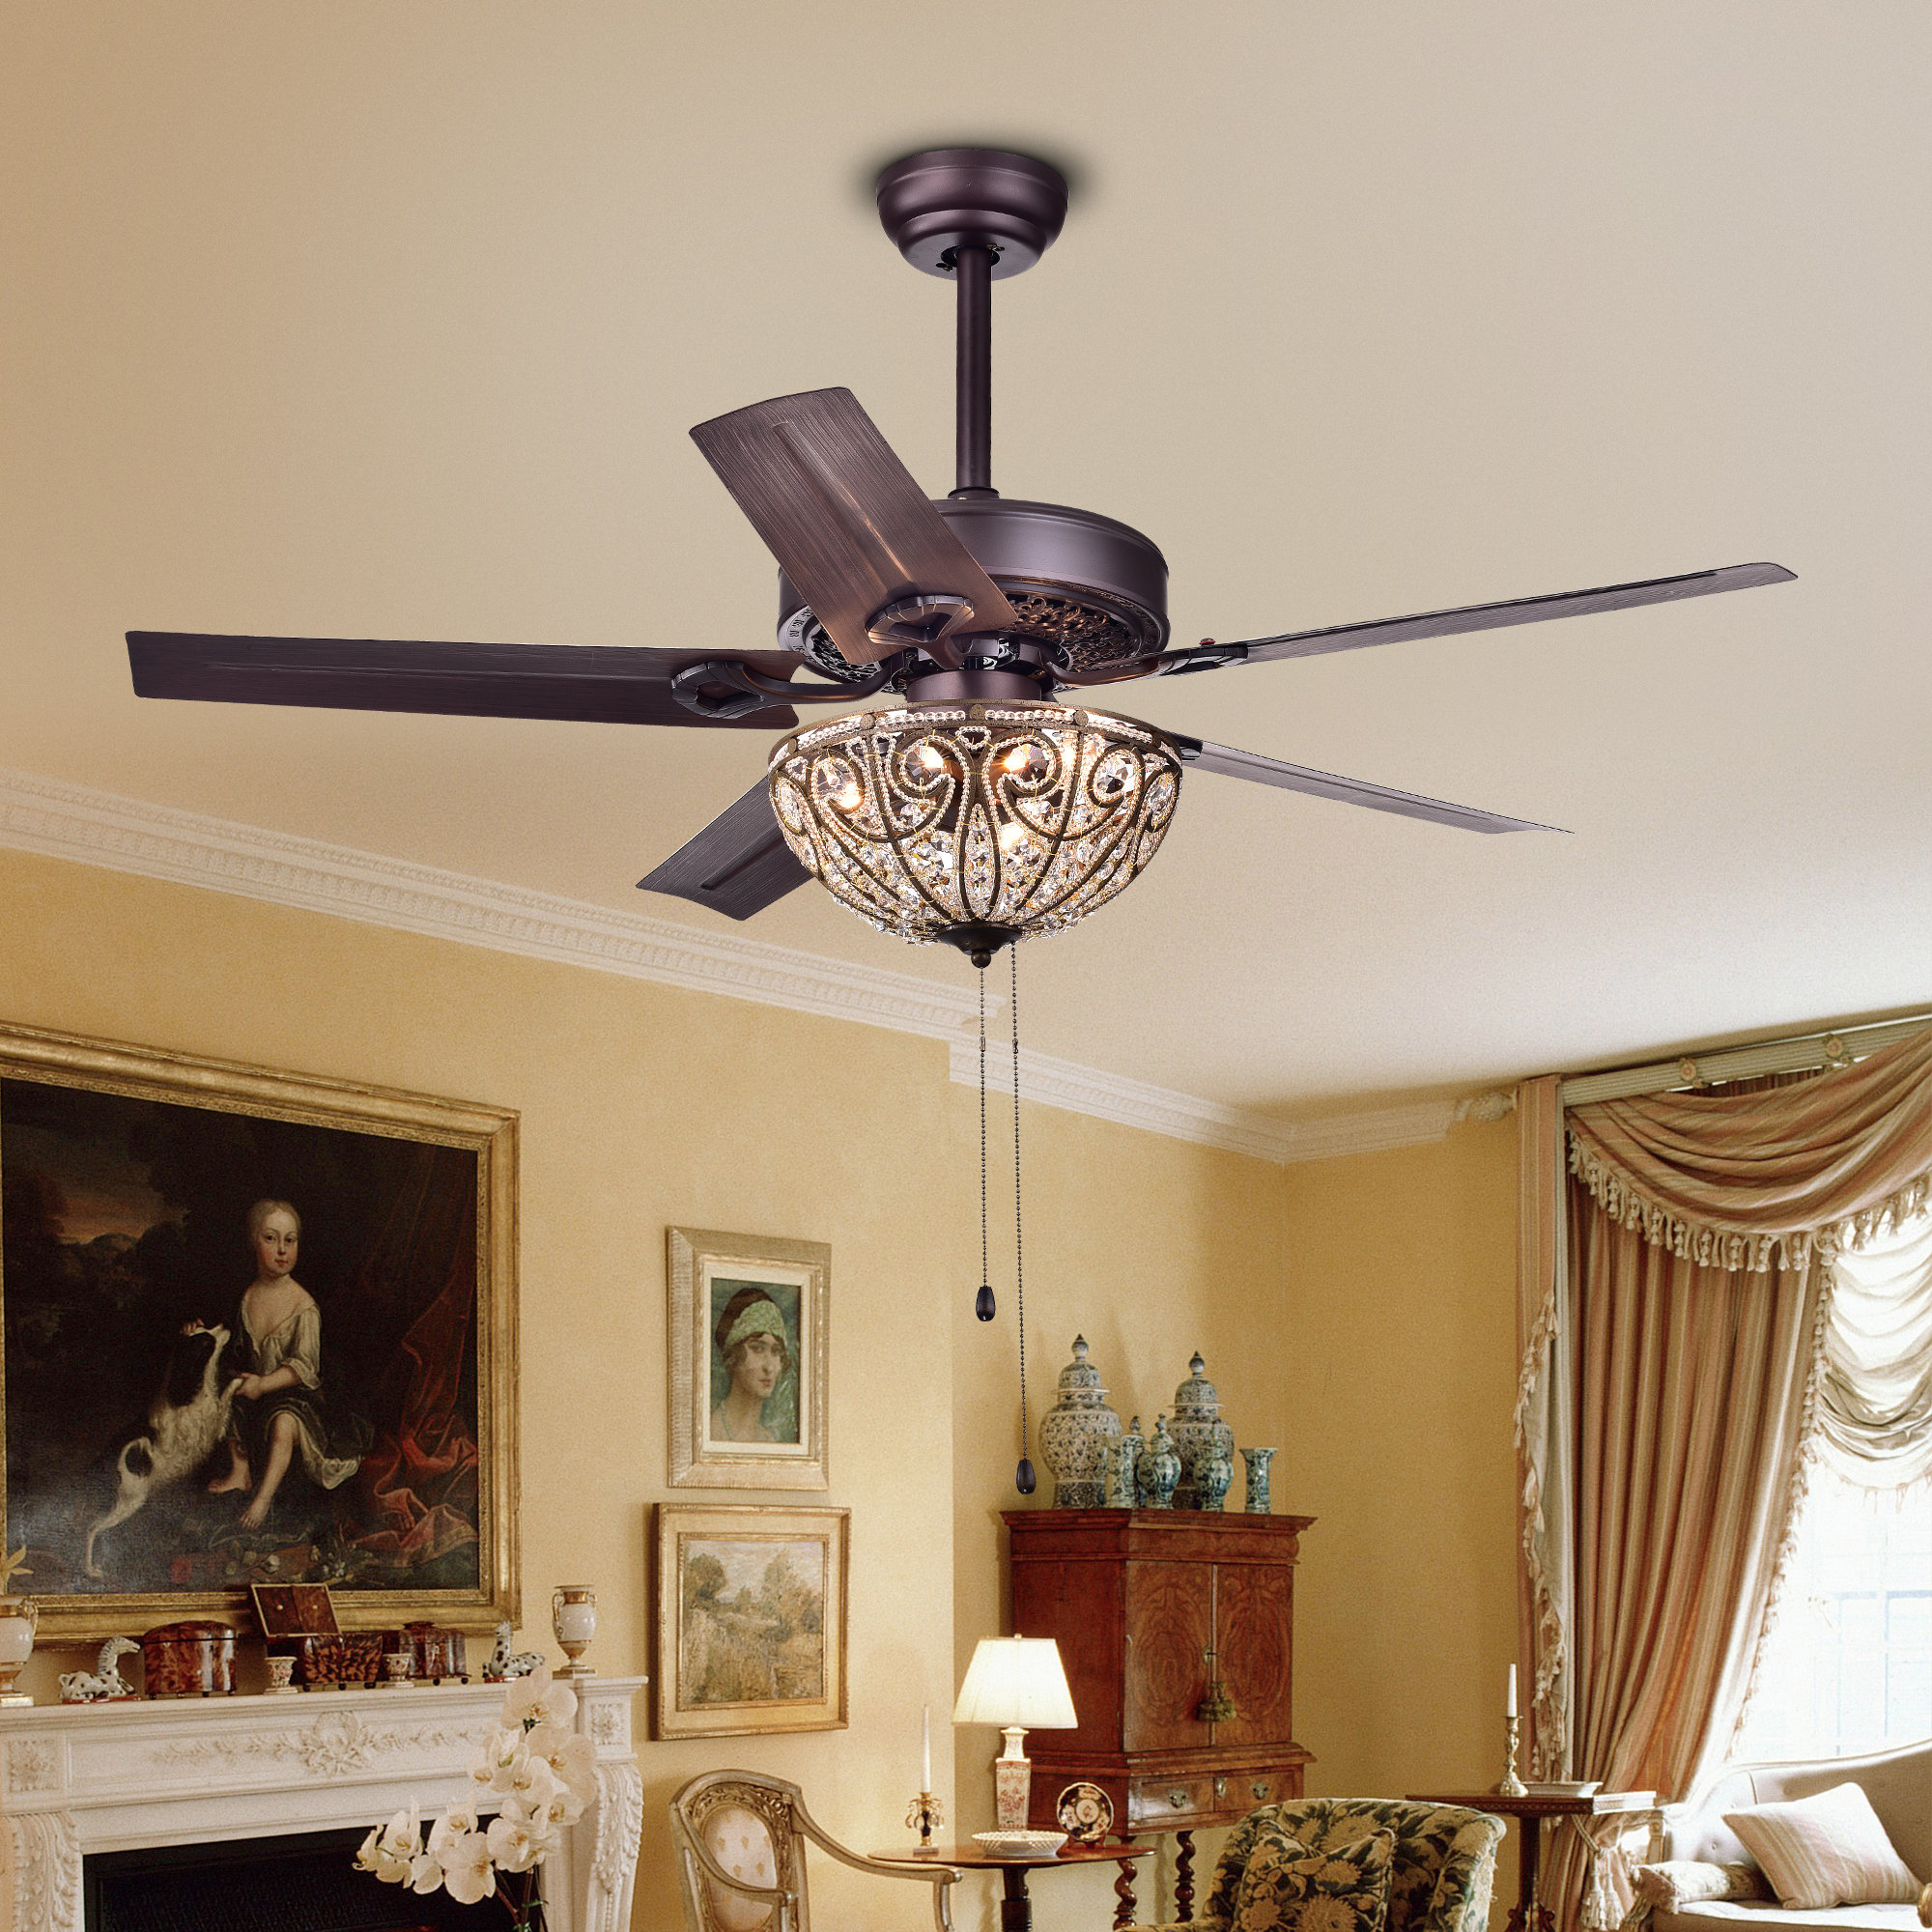 "Widely Used Norah 5 Blade Ceiling Fans For 48"" 5 Blade Ceiling Fan, Light Kit Included (View 8 of 20)"